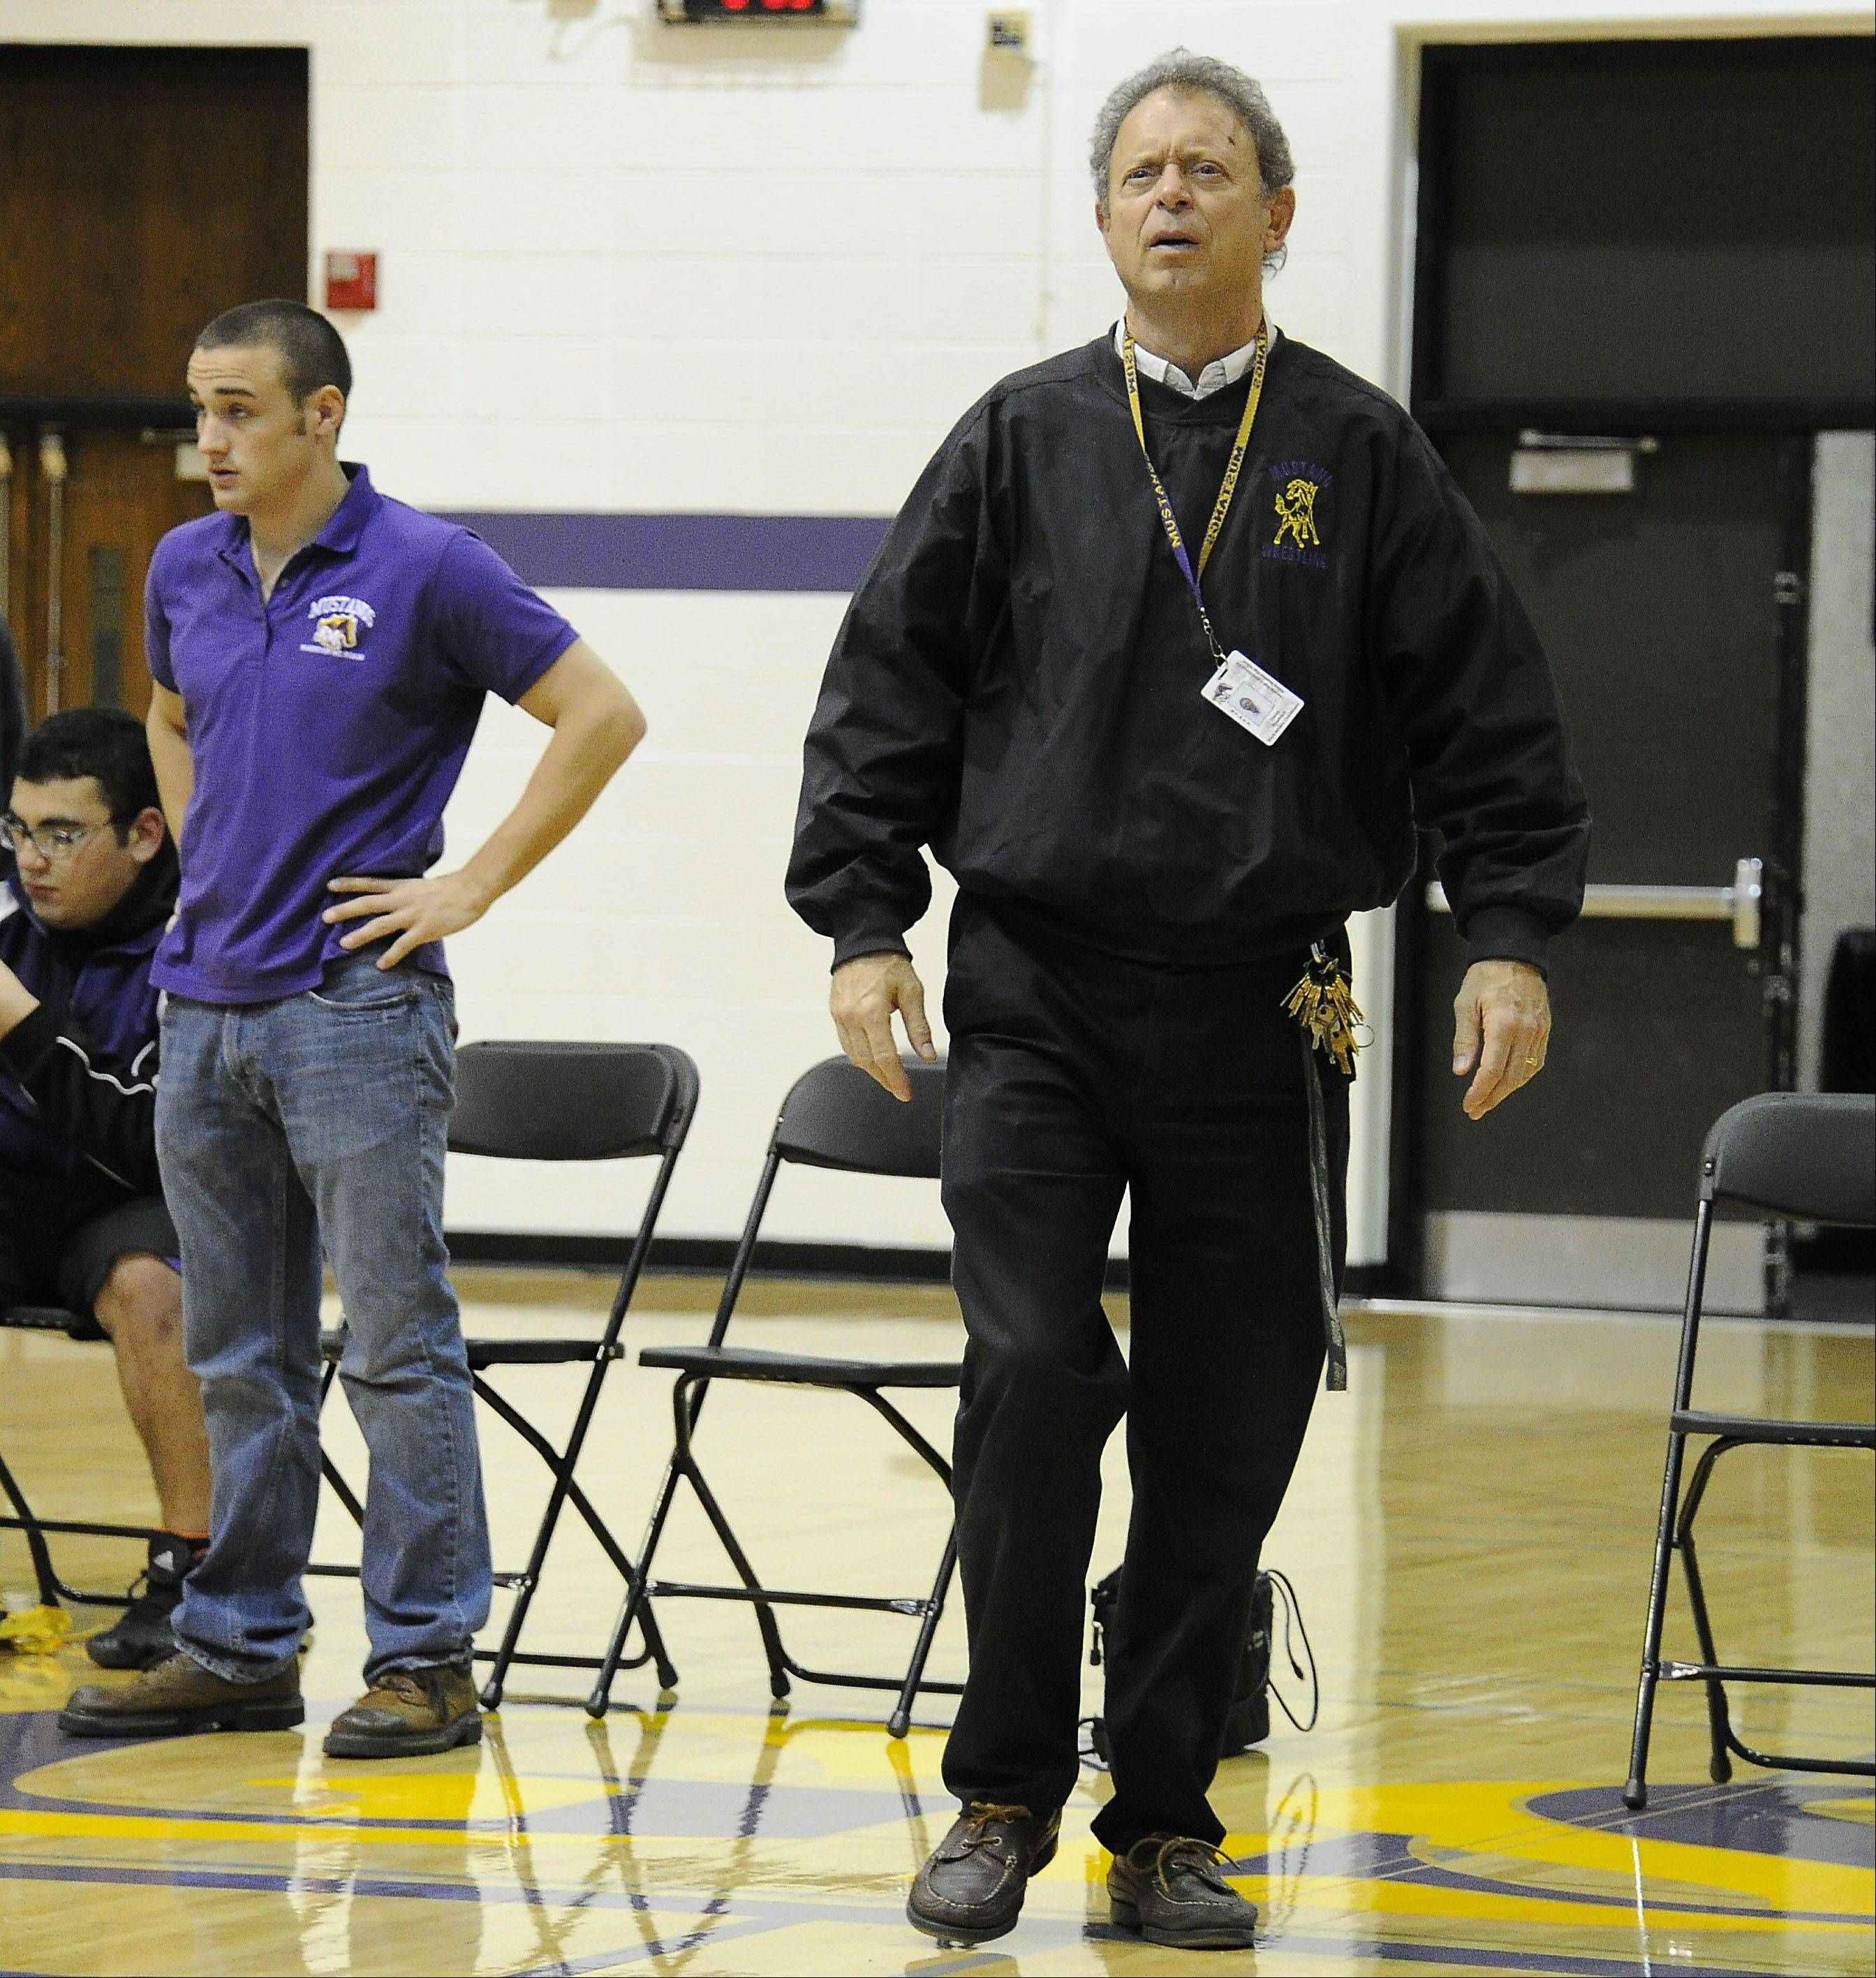 Dave Froelich has coached 29 wrestlers to Mid-Suburban League titles in a standout coaching career at Rolling Meadows.